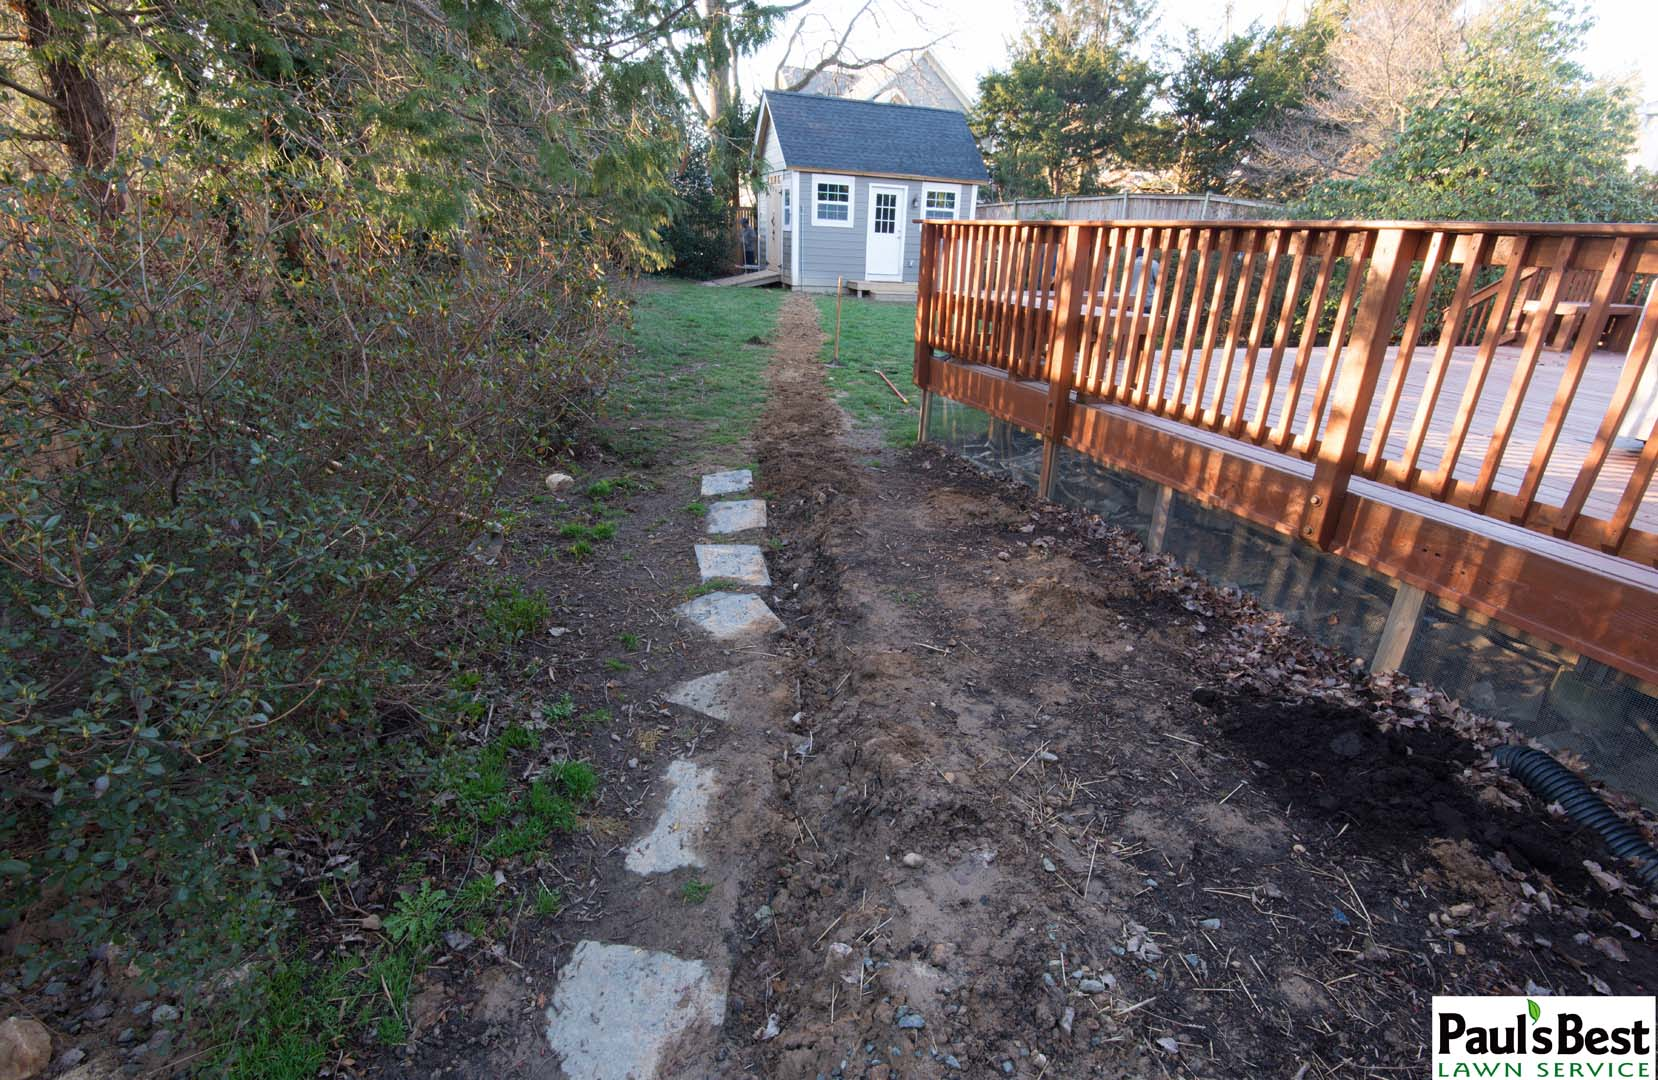 https://paulsbestlawn.com/pbls-img/portfolio/other-services/before-and-after/web-ready/large/BAOS1-b-After-Sod-and-Mulching-in-Arlington-VA.jpg